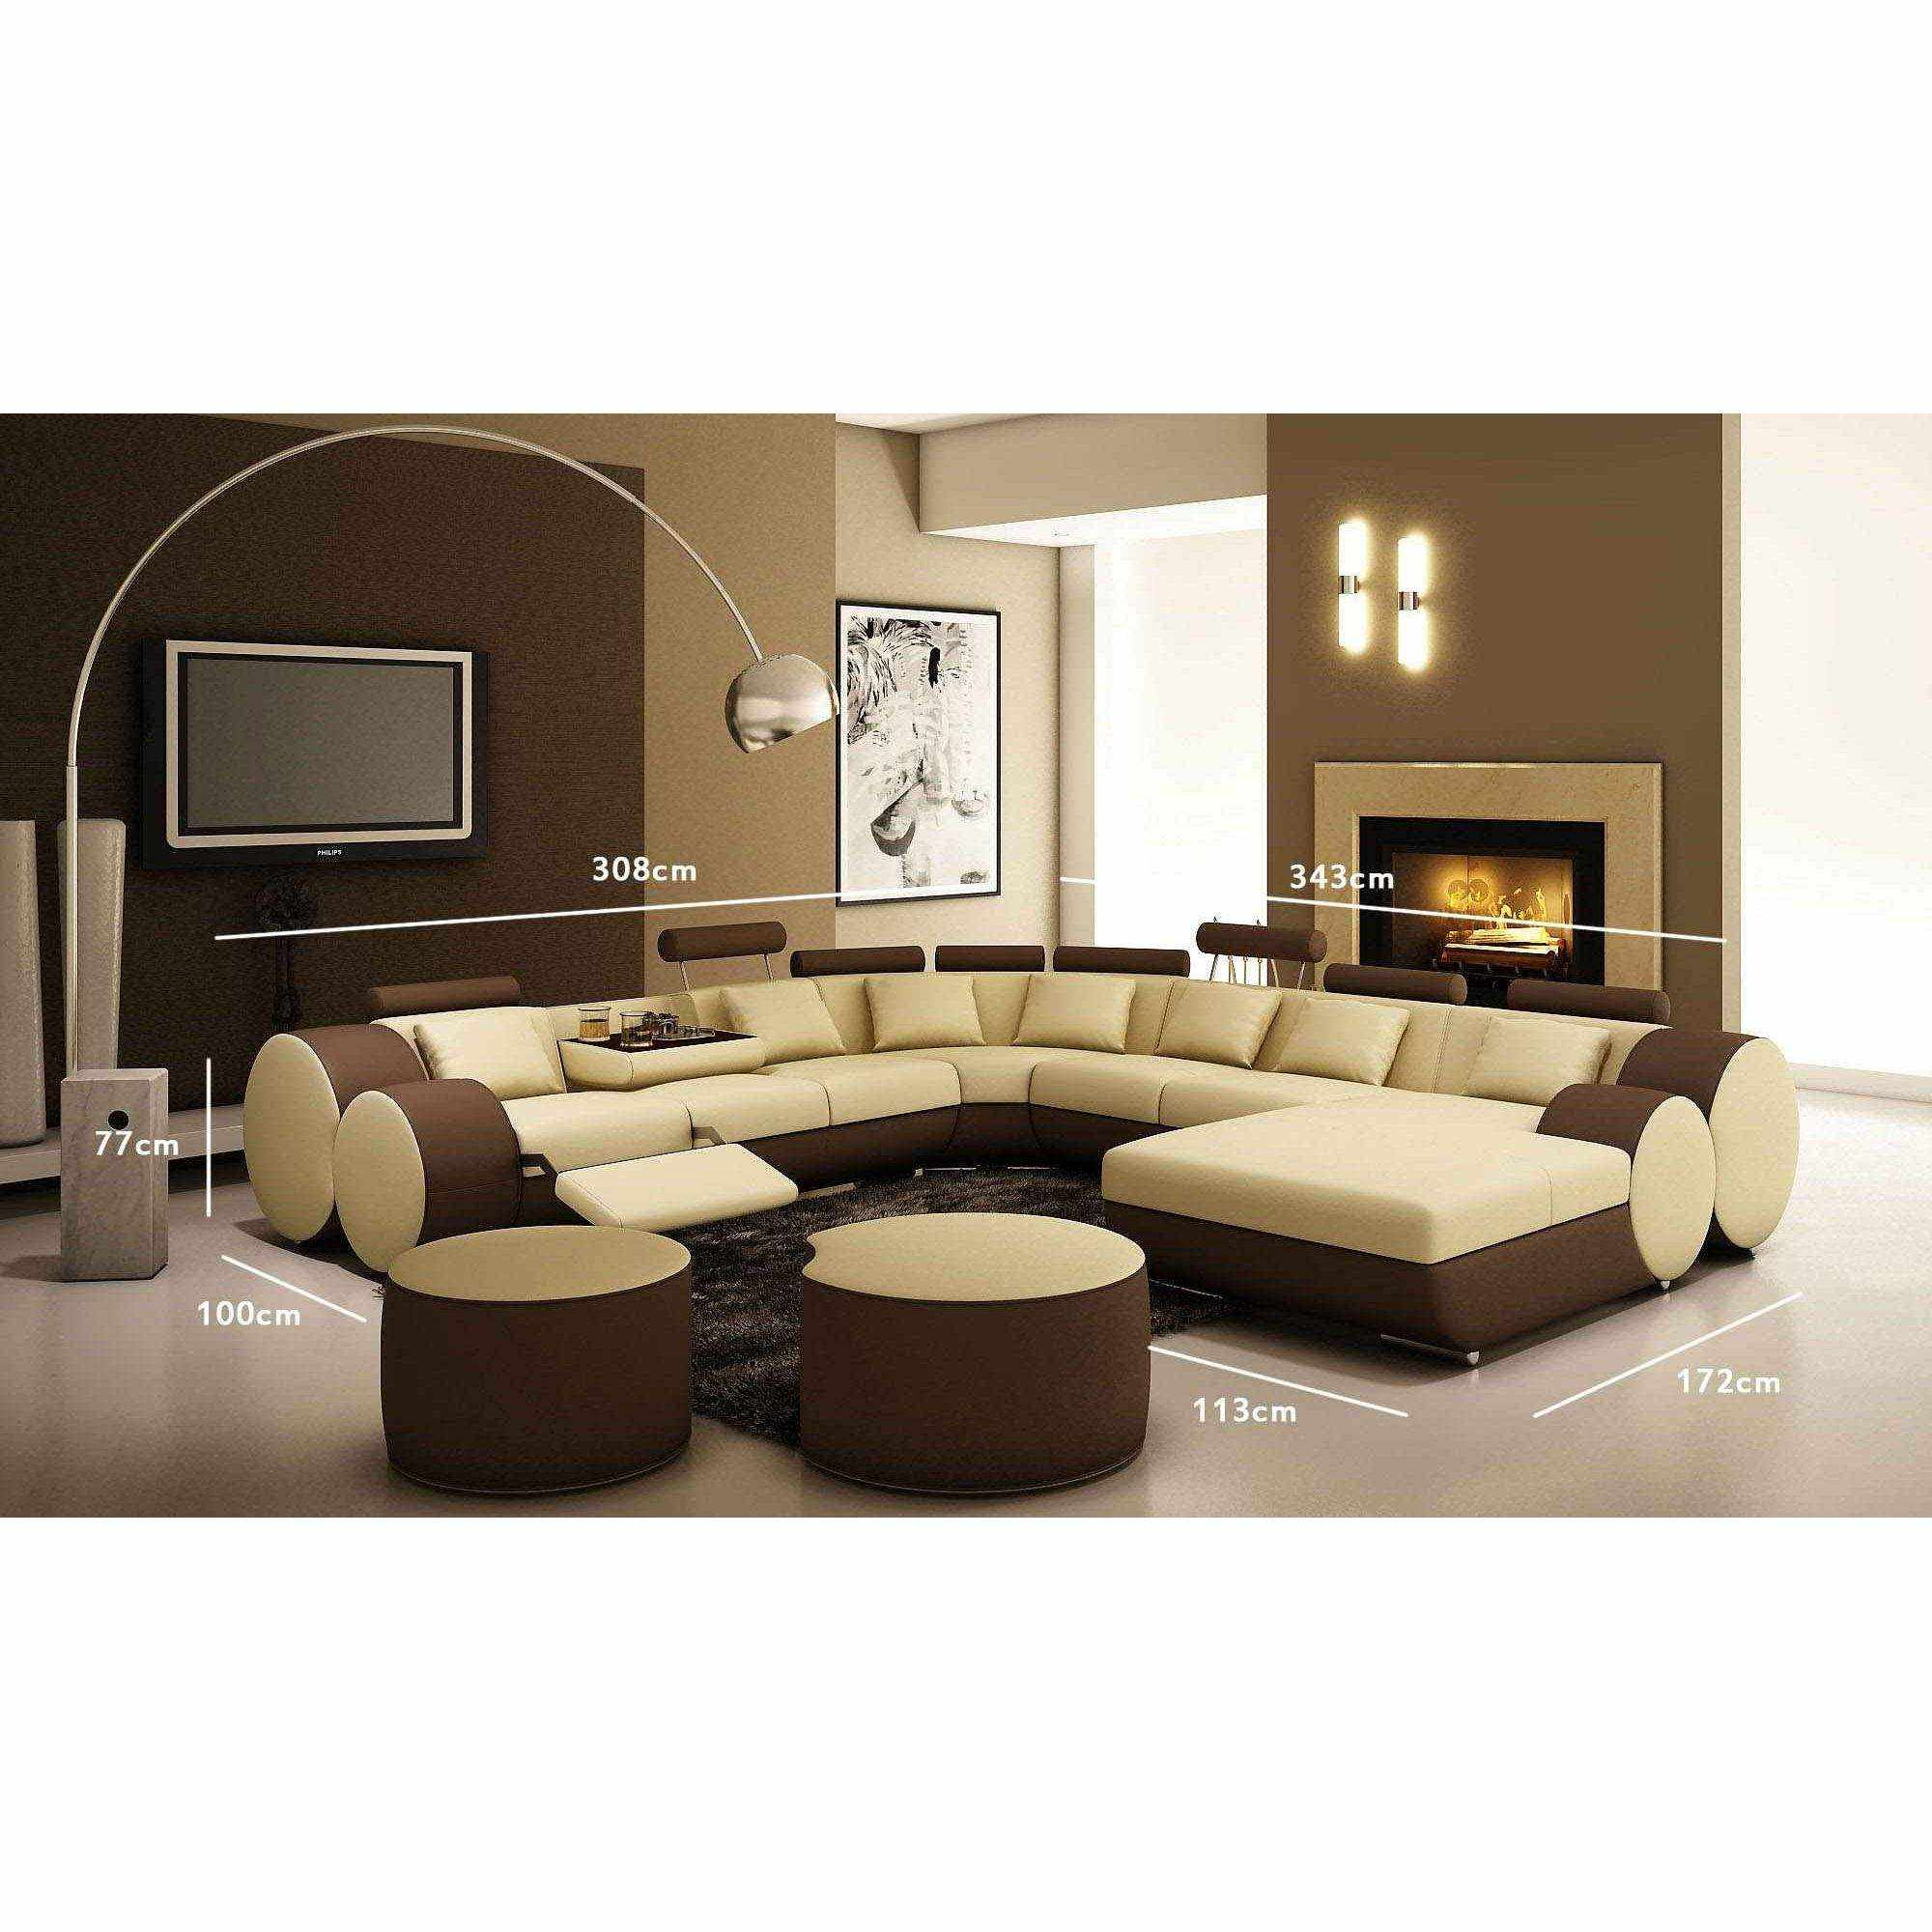 chambre marron et beige moderne pr l vement. Black Bedroom Furniture Sets. Home Design Ideas